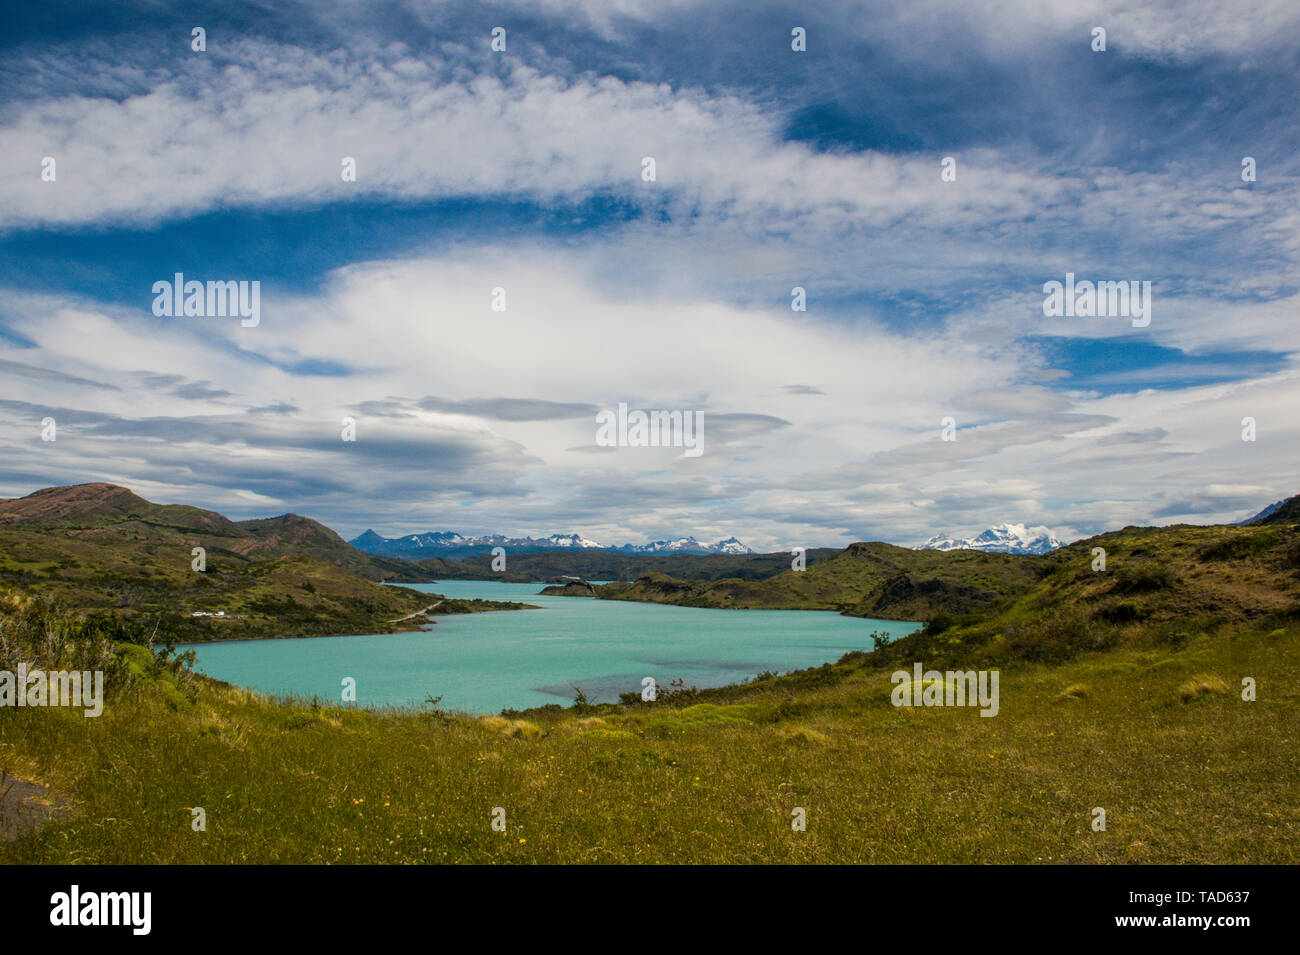 Chile, Patagonia, Torres del Paine National Park, Turquoise lake - Stock Image